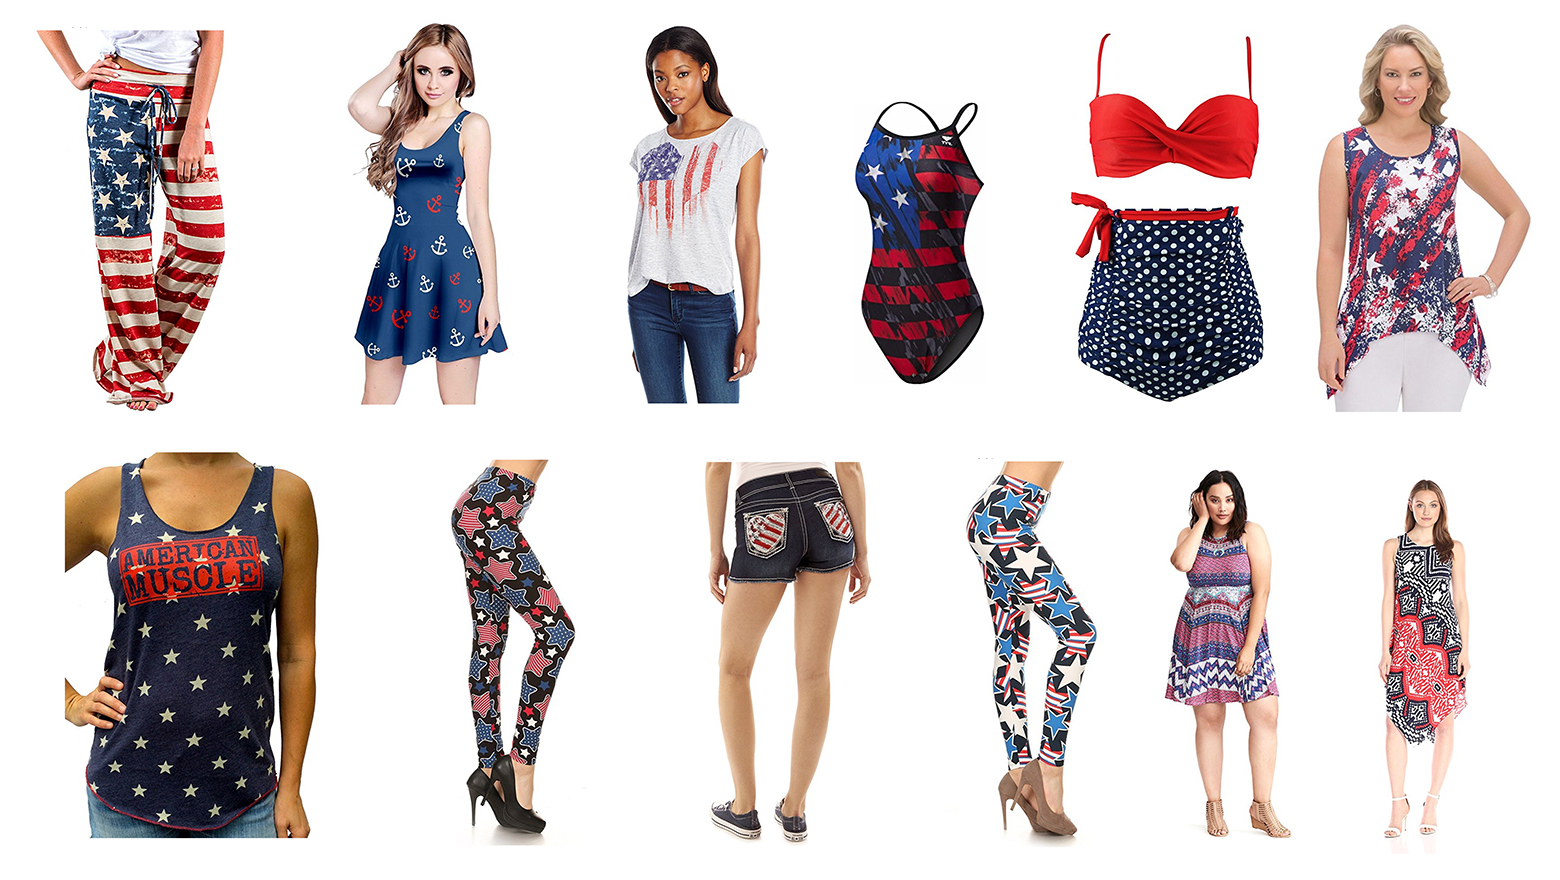 fourth of july outfits, 4th of july outfits, 4th of july shirts, fourth of july shirts, 4th of july clothes, 4th of july tank tops, American flag bikini, American flag bathing suit